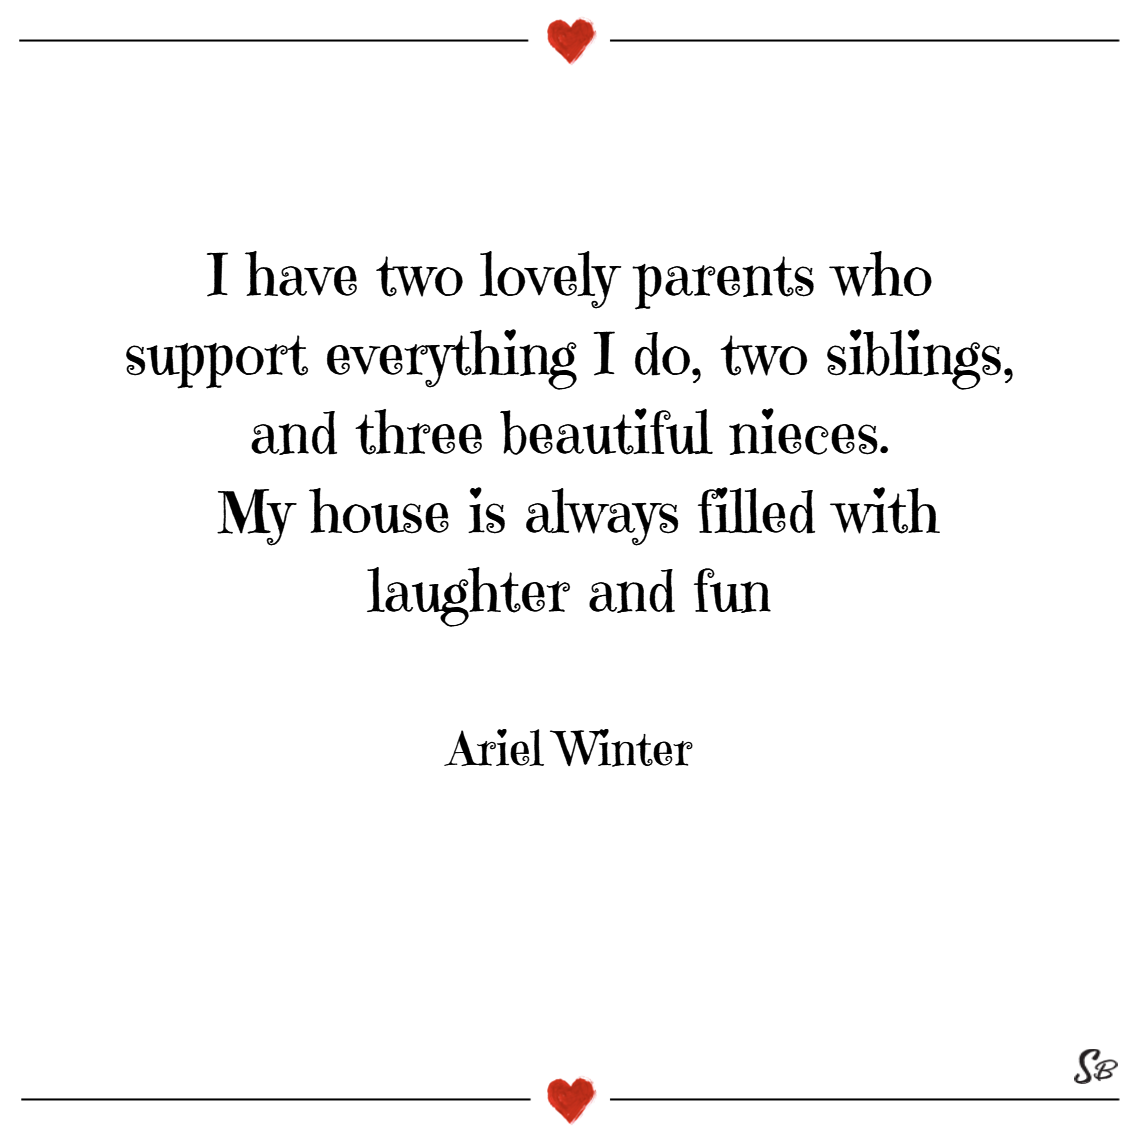 I have two lovely parents who support everything i do, two siblings, and three beautiful nieces. my house is always filled with laughter and fun! – ariel winter